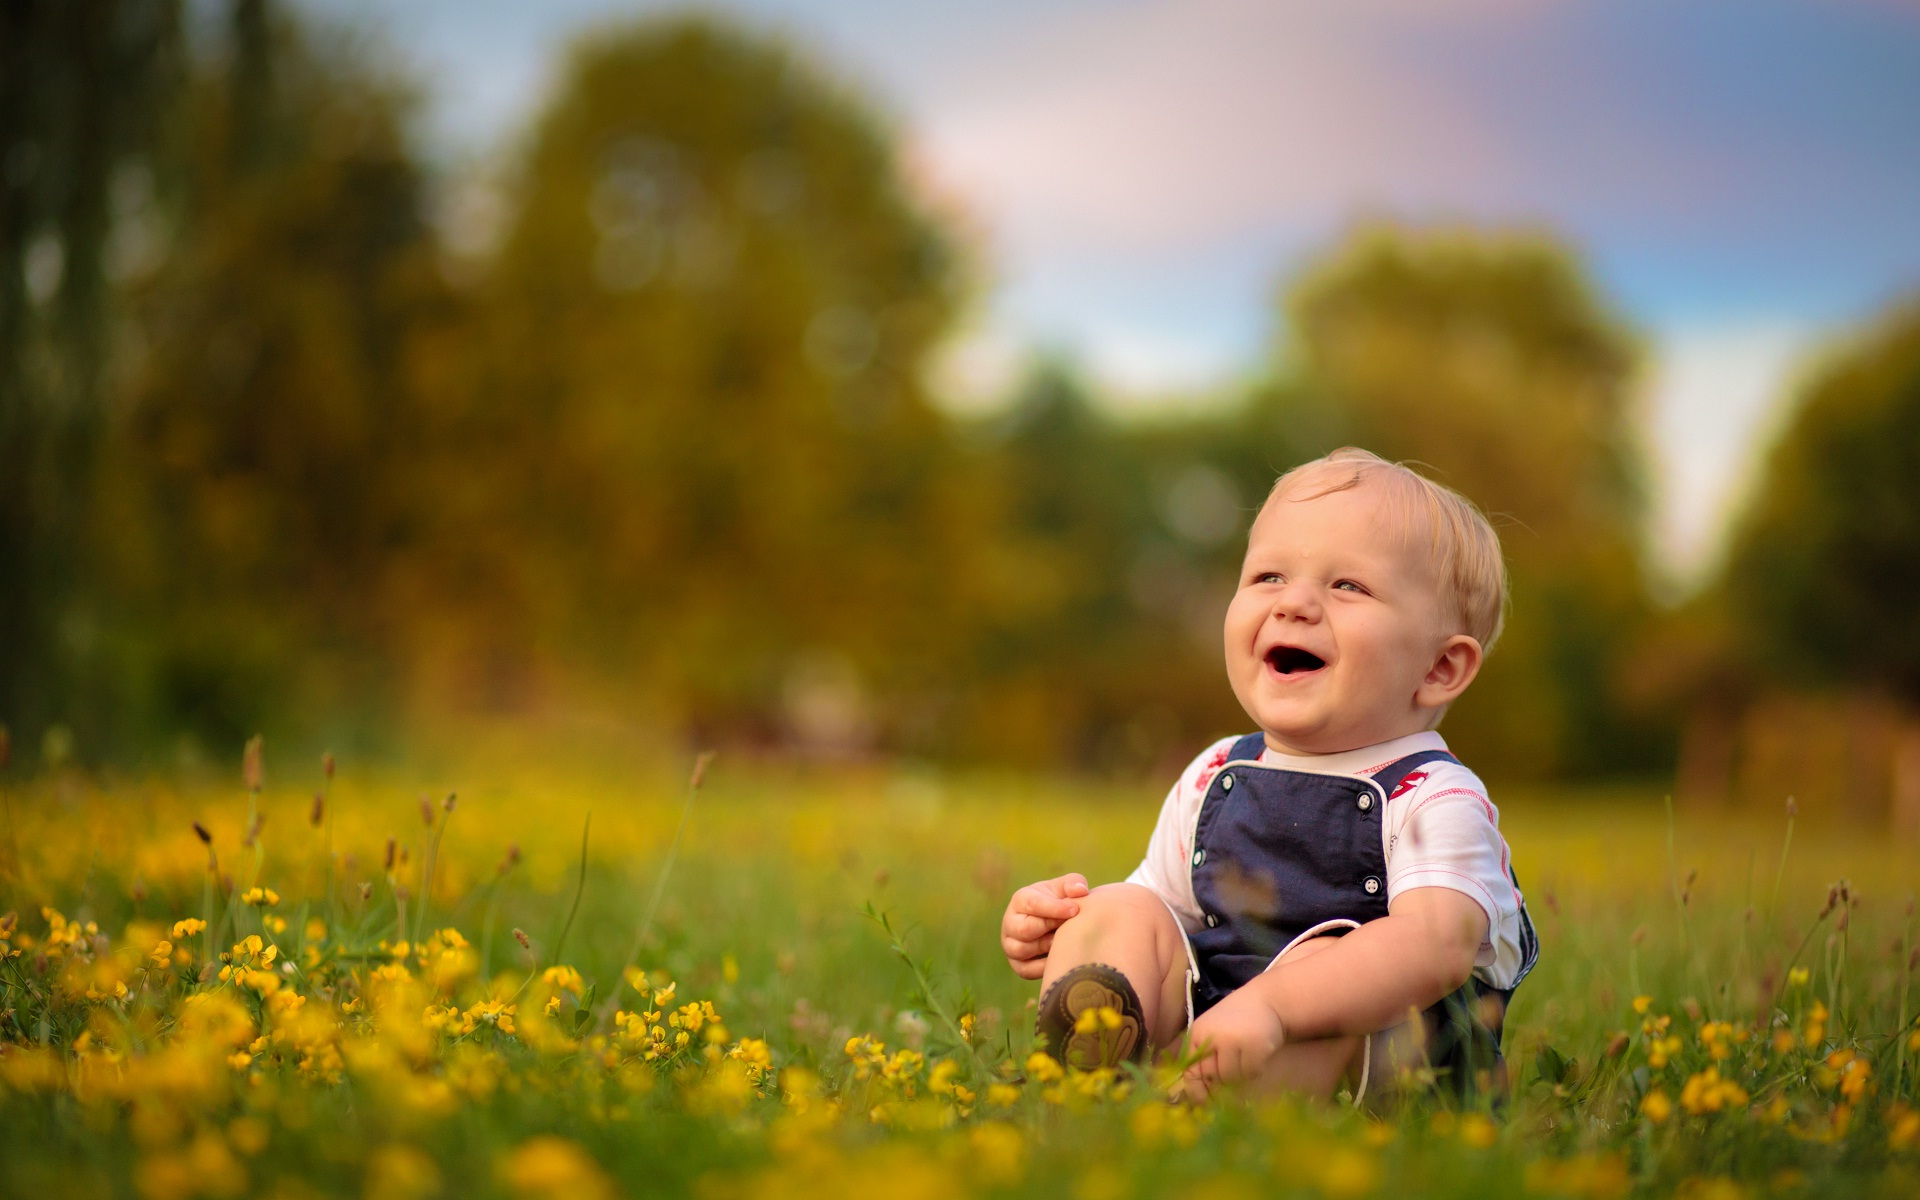 Quick Tips To Keep Your Little One Happy